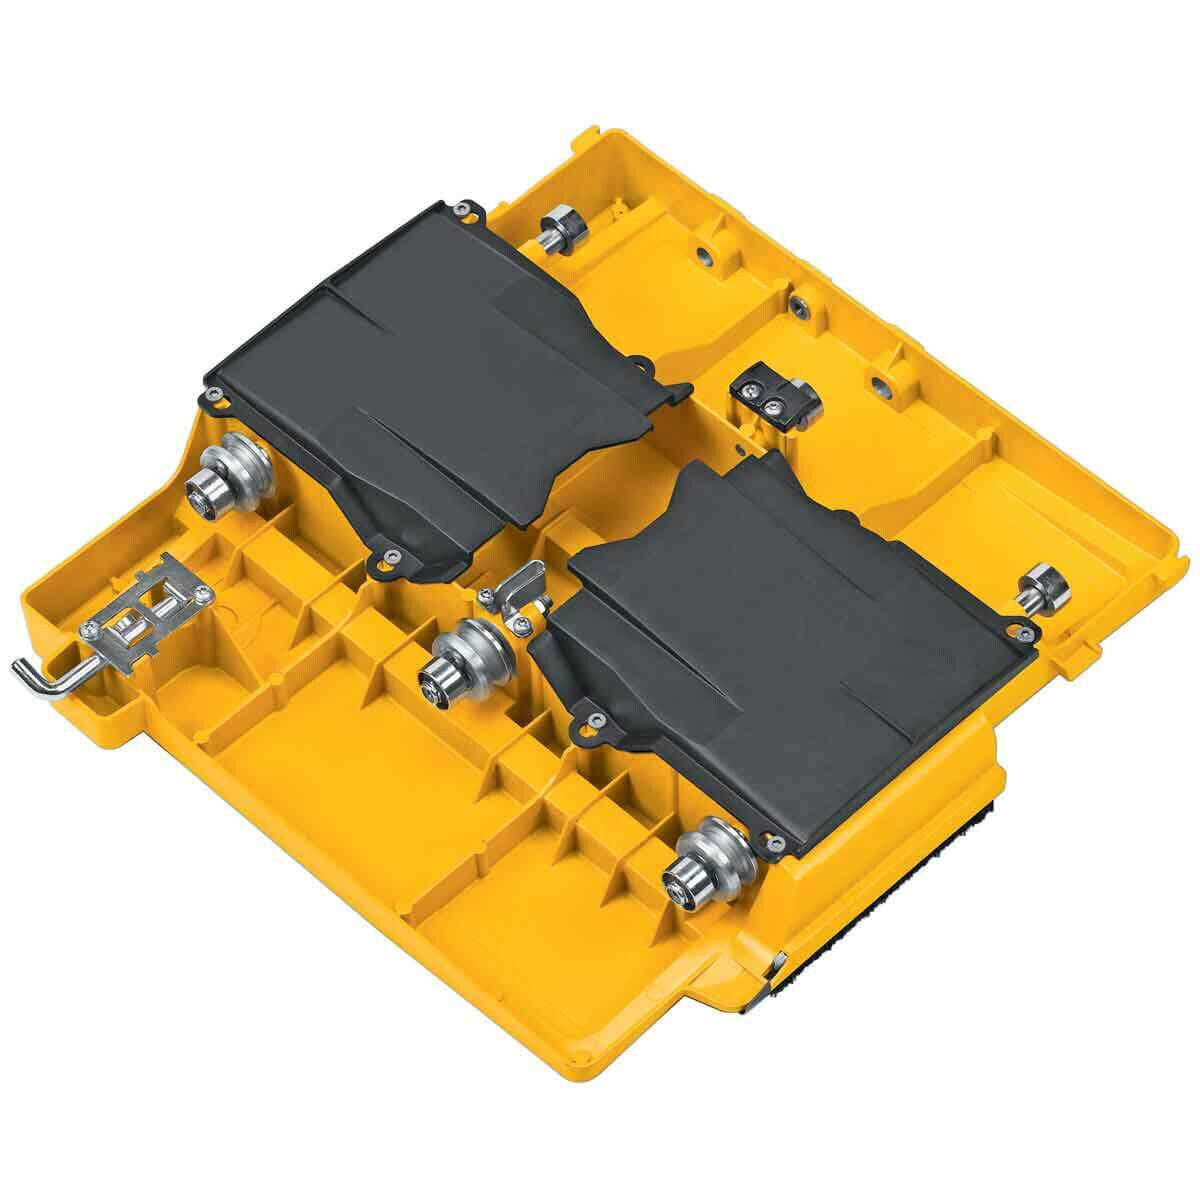 D24000 Tile Saw carriage tray water containment